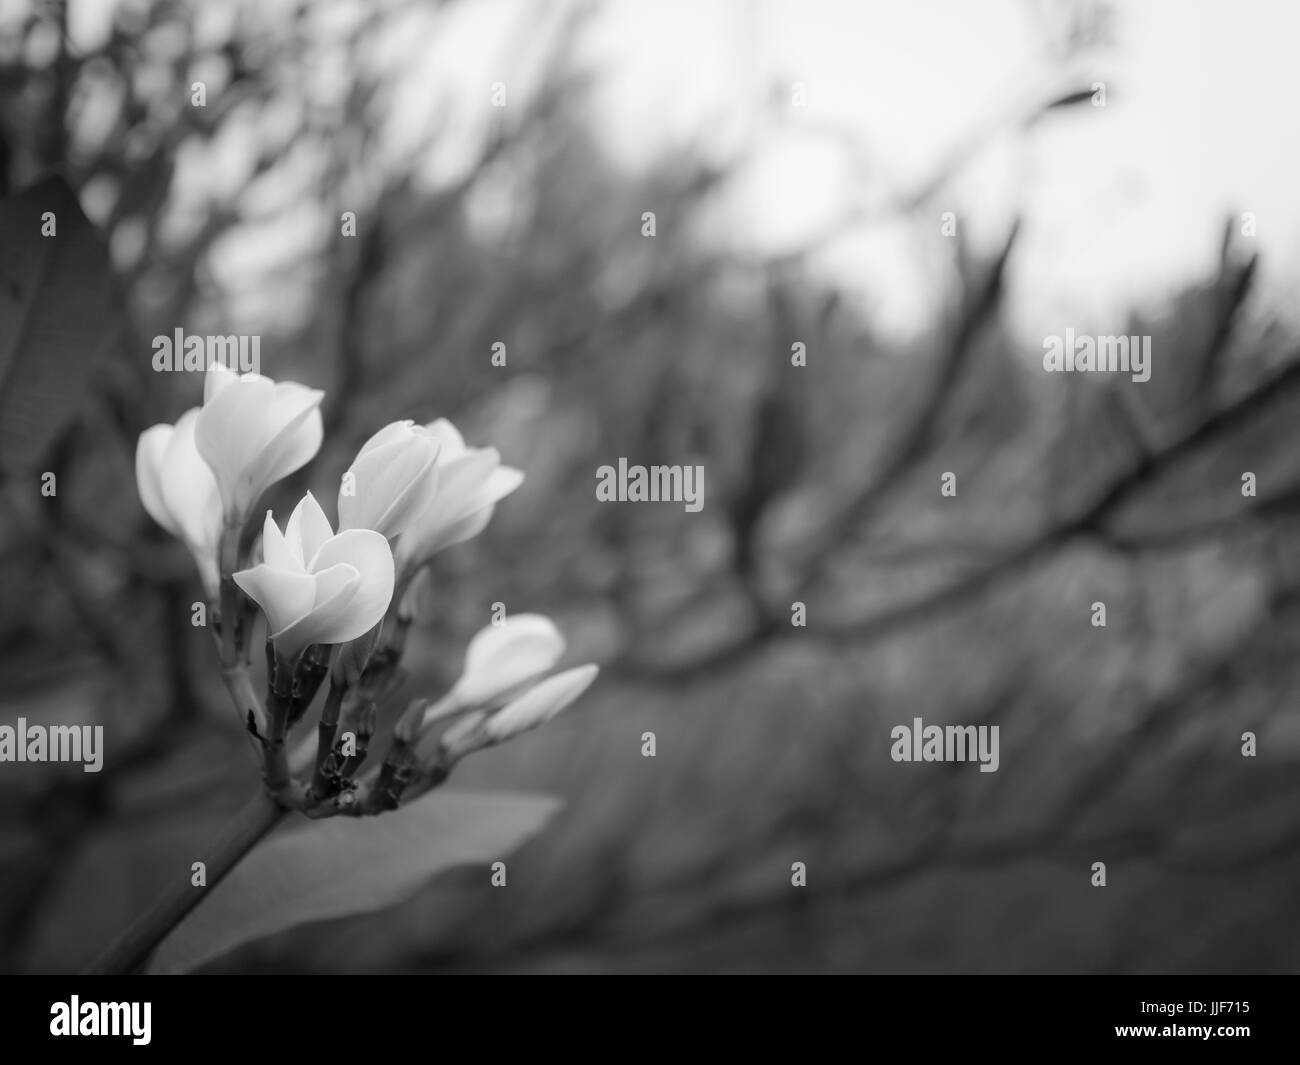 beautiful flower in black and white tone - Stock Image